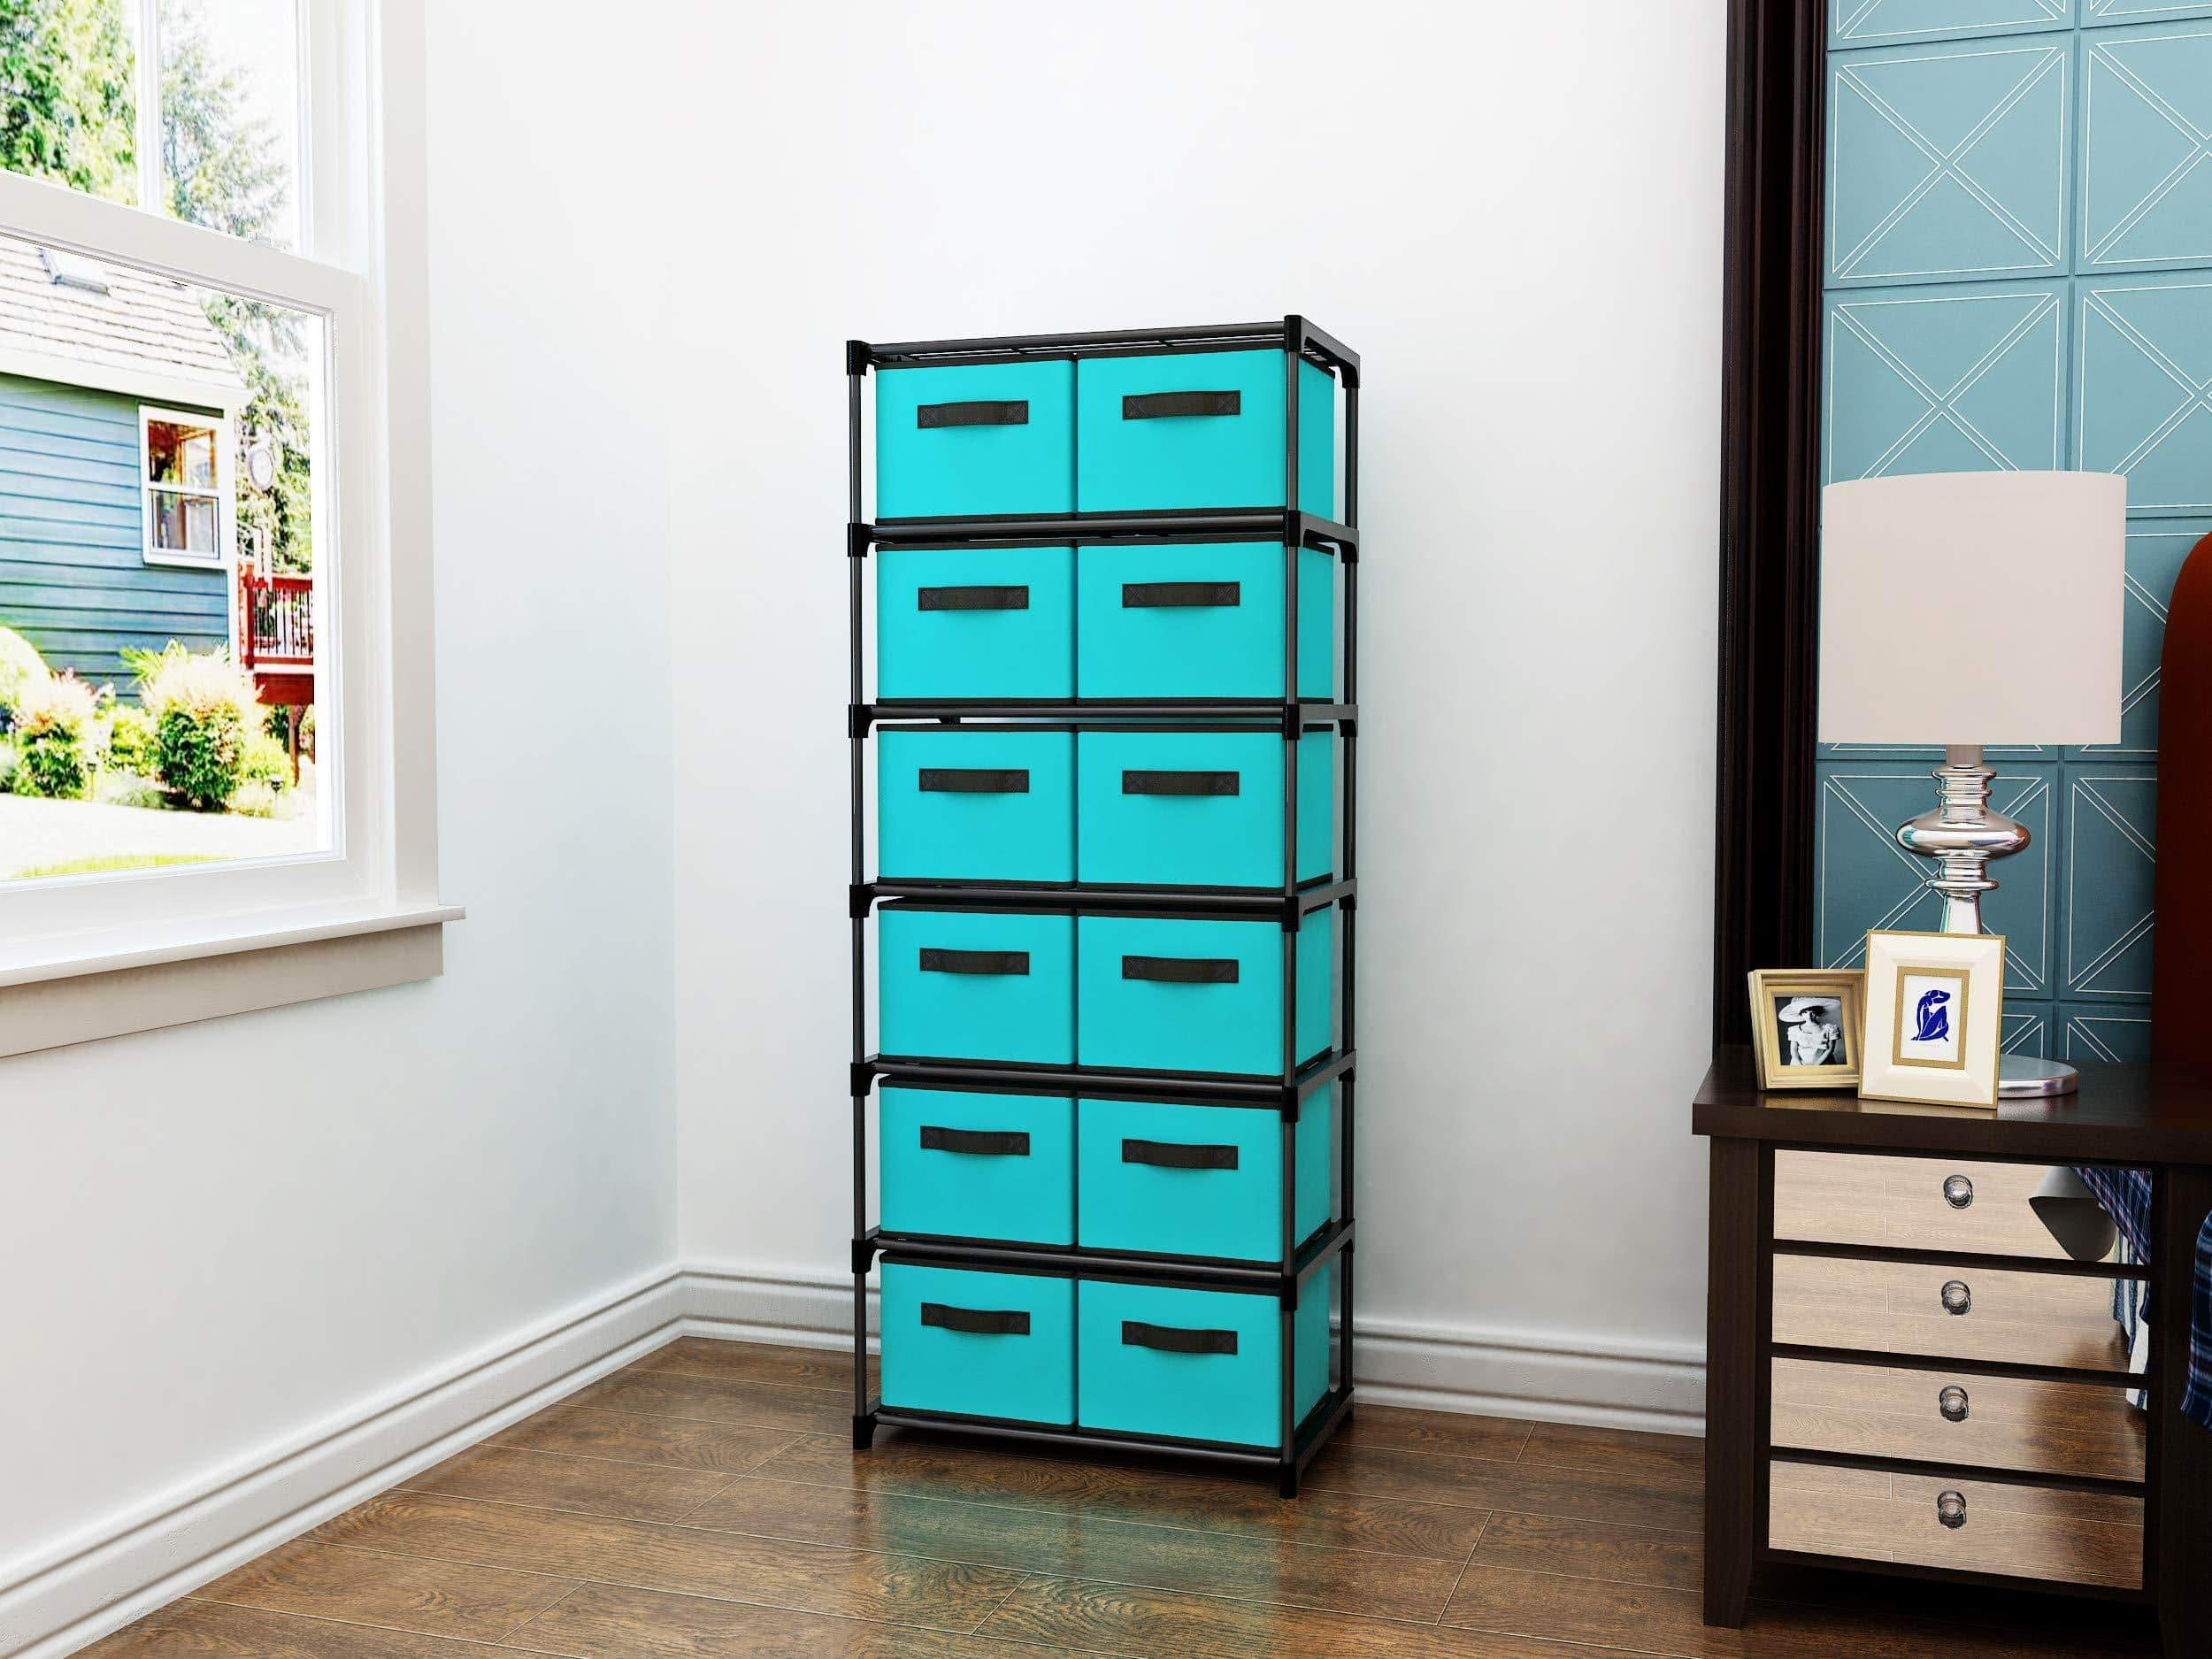 Purchase homebi storage chest shelf unit 12 drawer storage cabinet with 6 tier metal wire shelf and 12 removable non woven fabric bins in turquoise 20 67w x 12d x49 21h